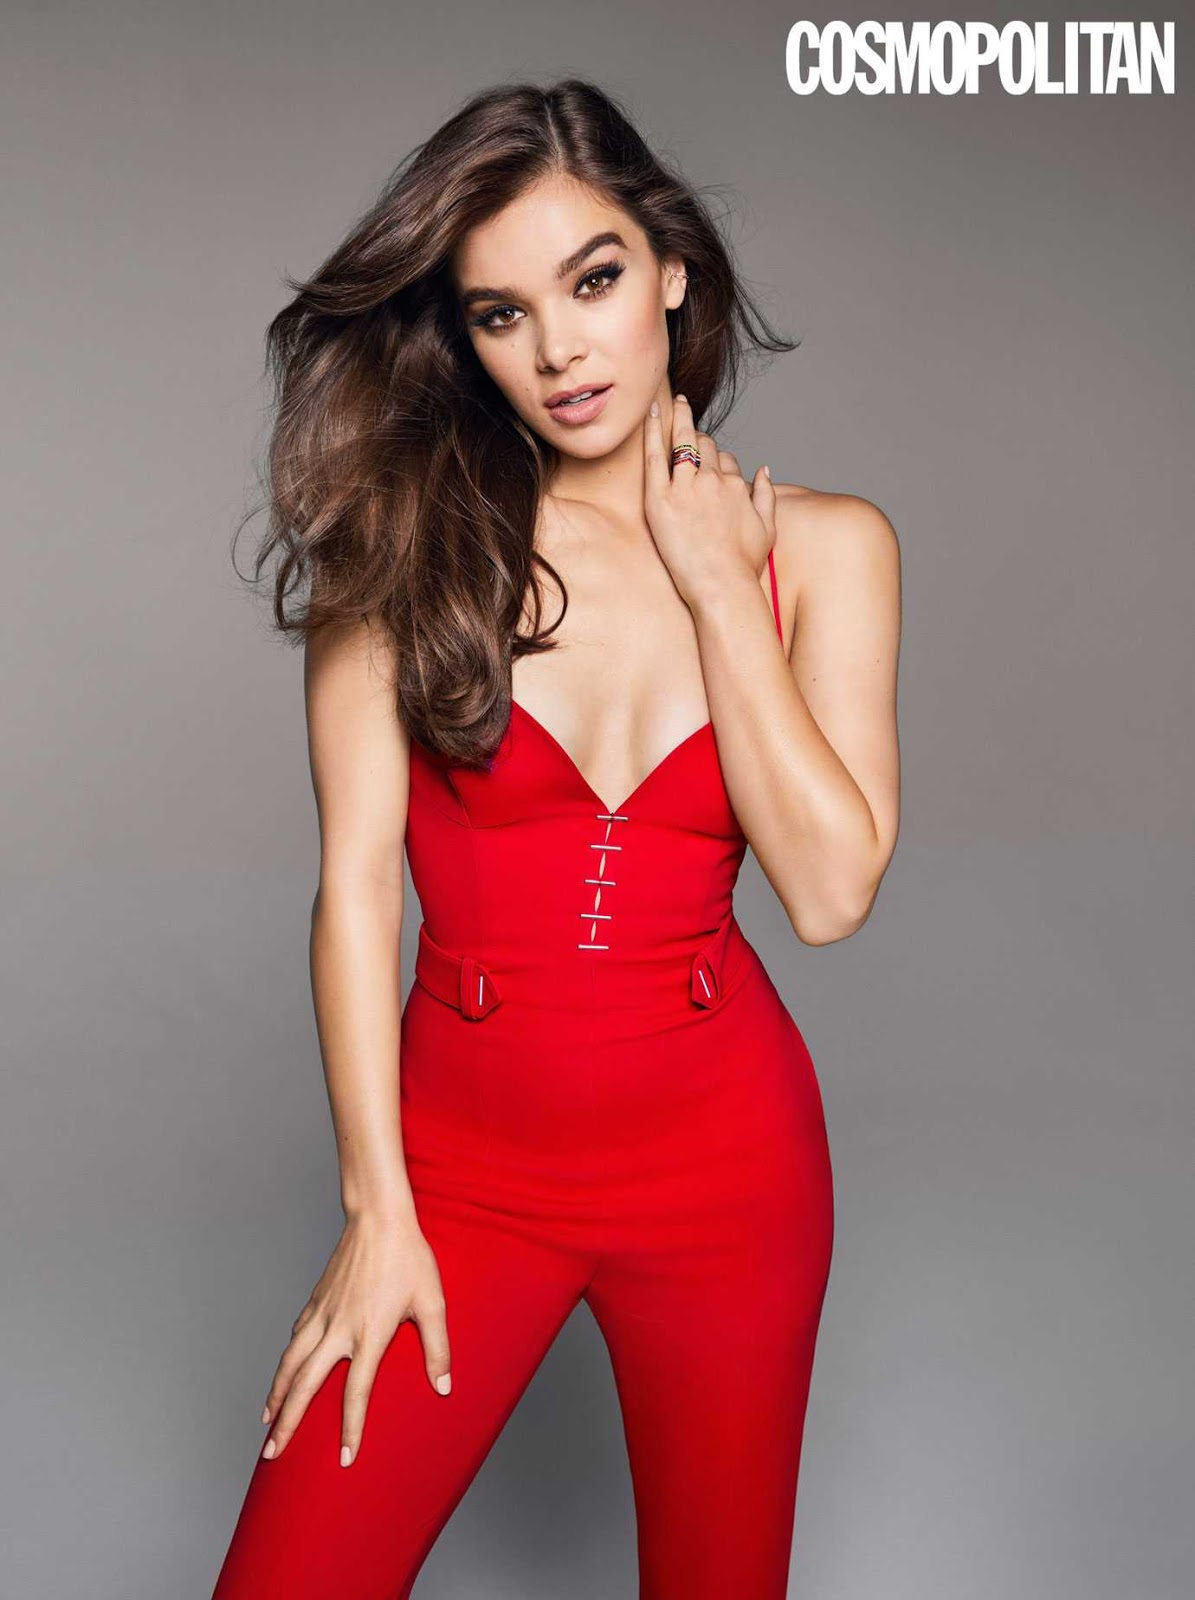 Hailee Seinfeld wore a jumpsuit for Cosmopolitan to talk about her first kiss at age 11 while promoting the film Pitch Perfect 3